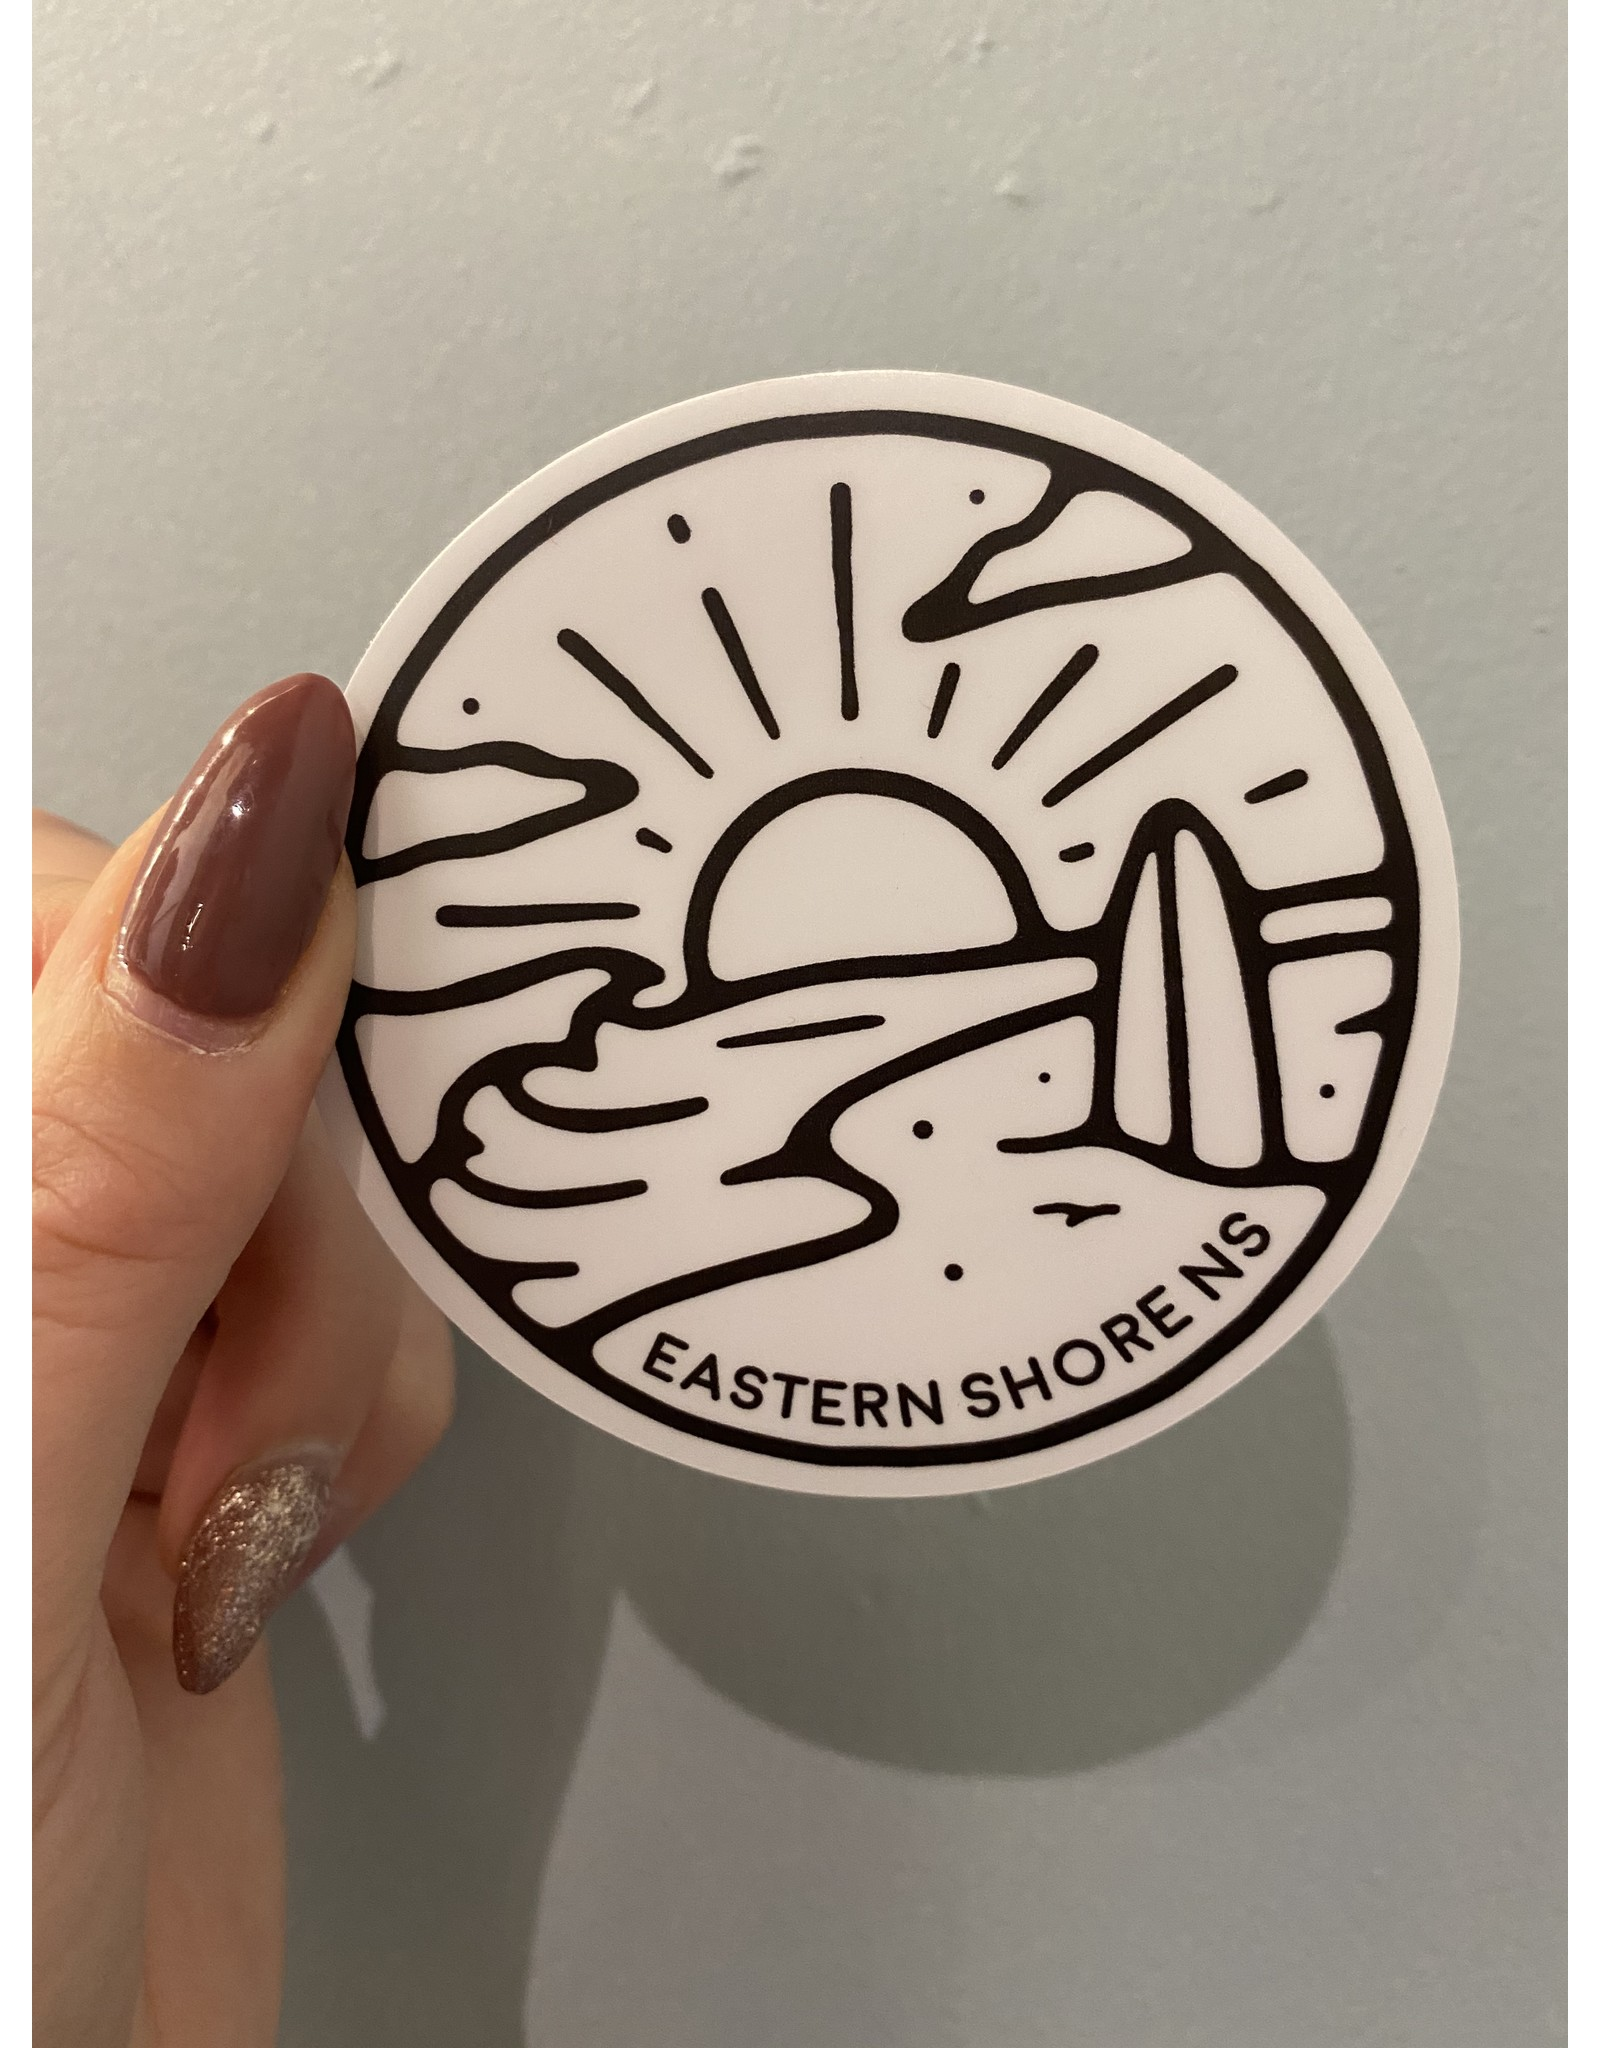 SST - Eastern Shore N.S. Sticker